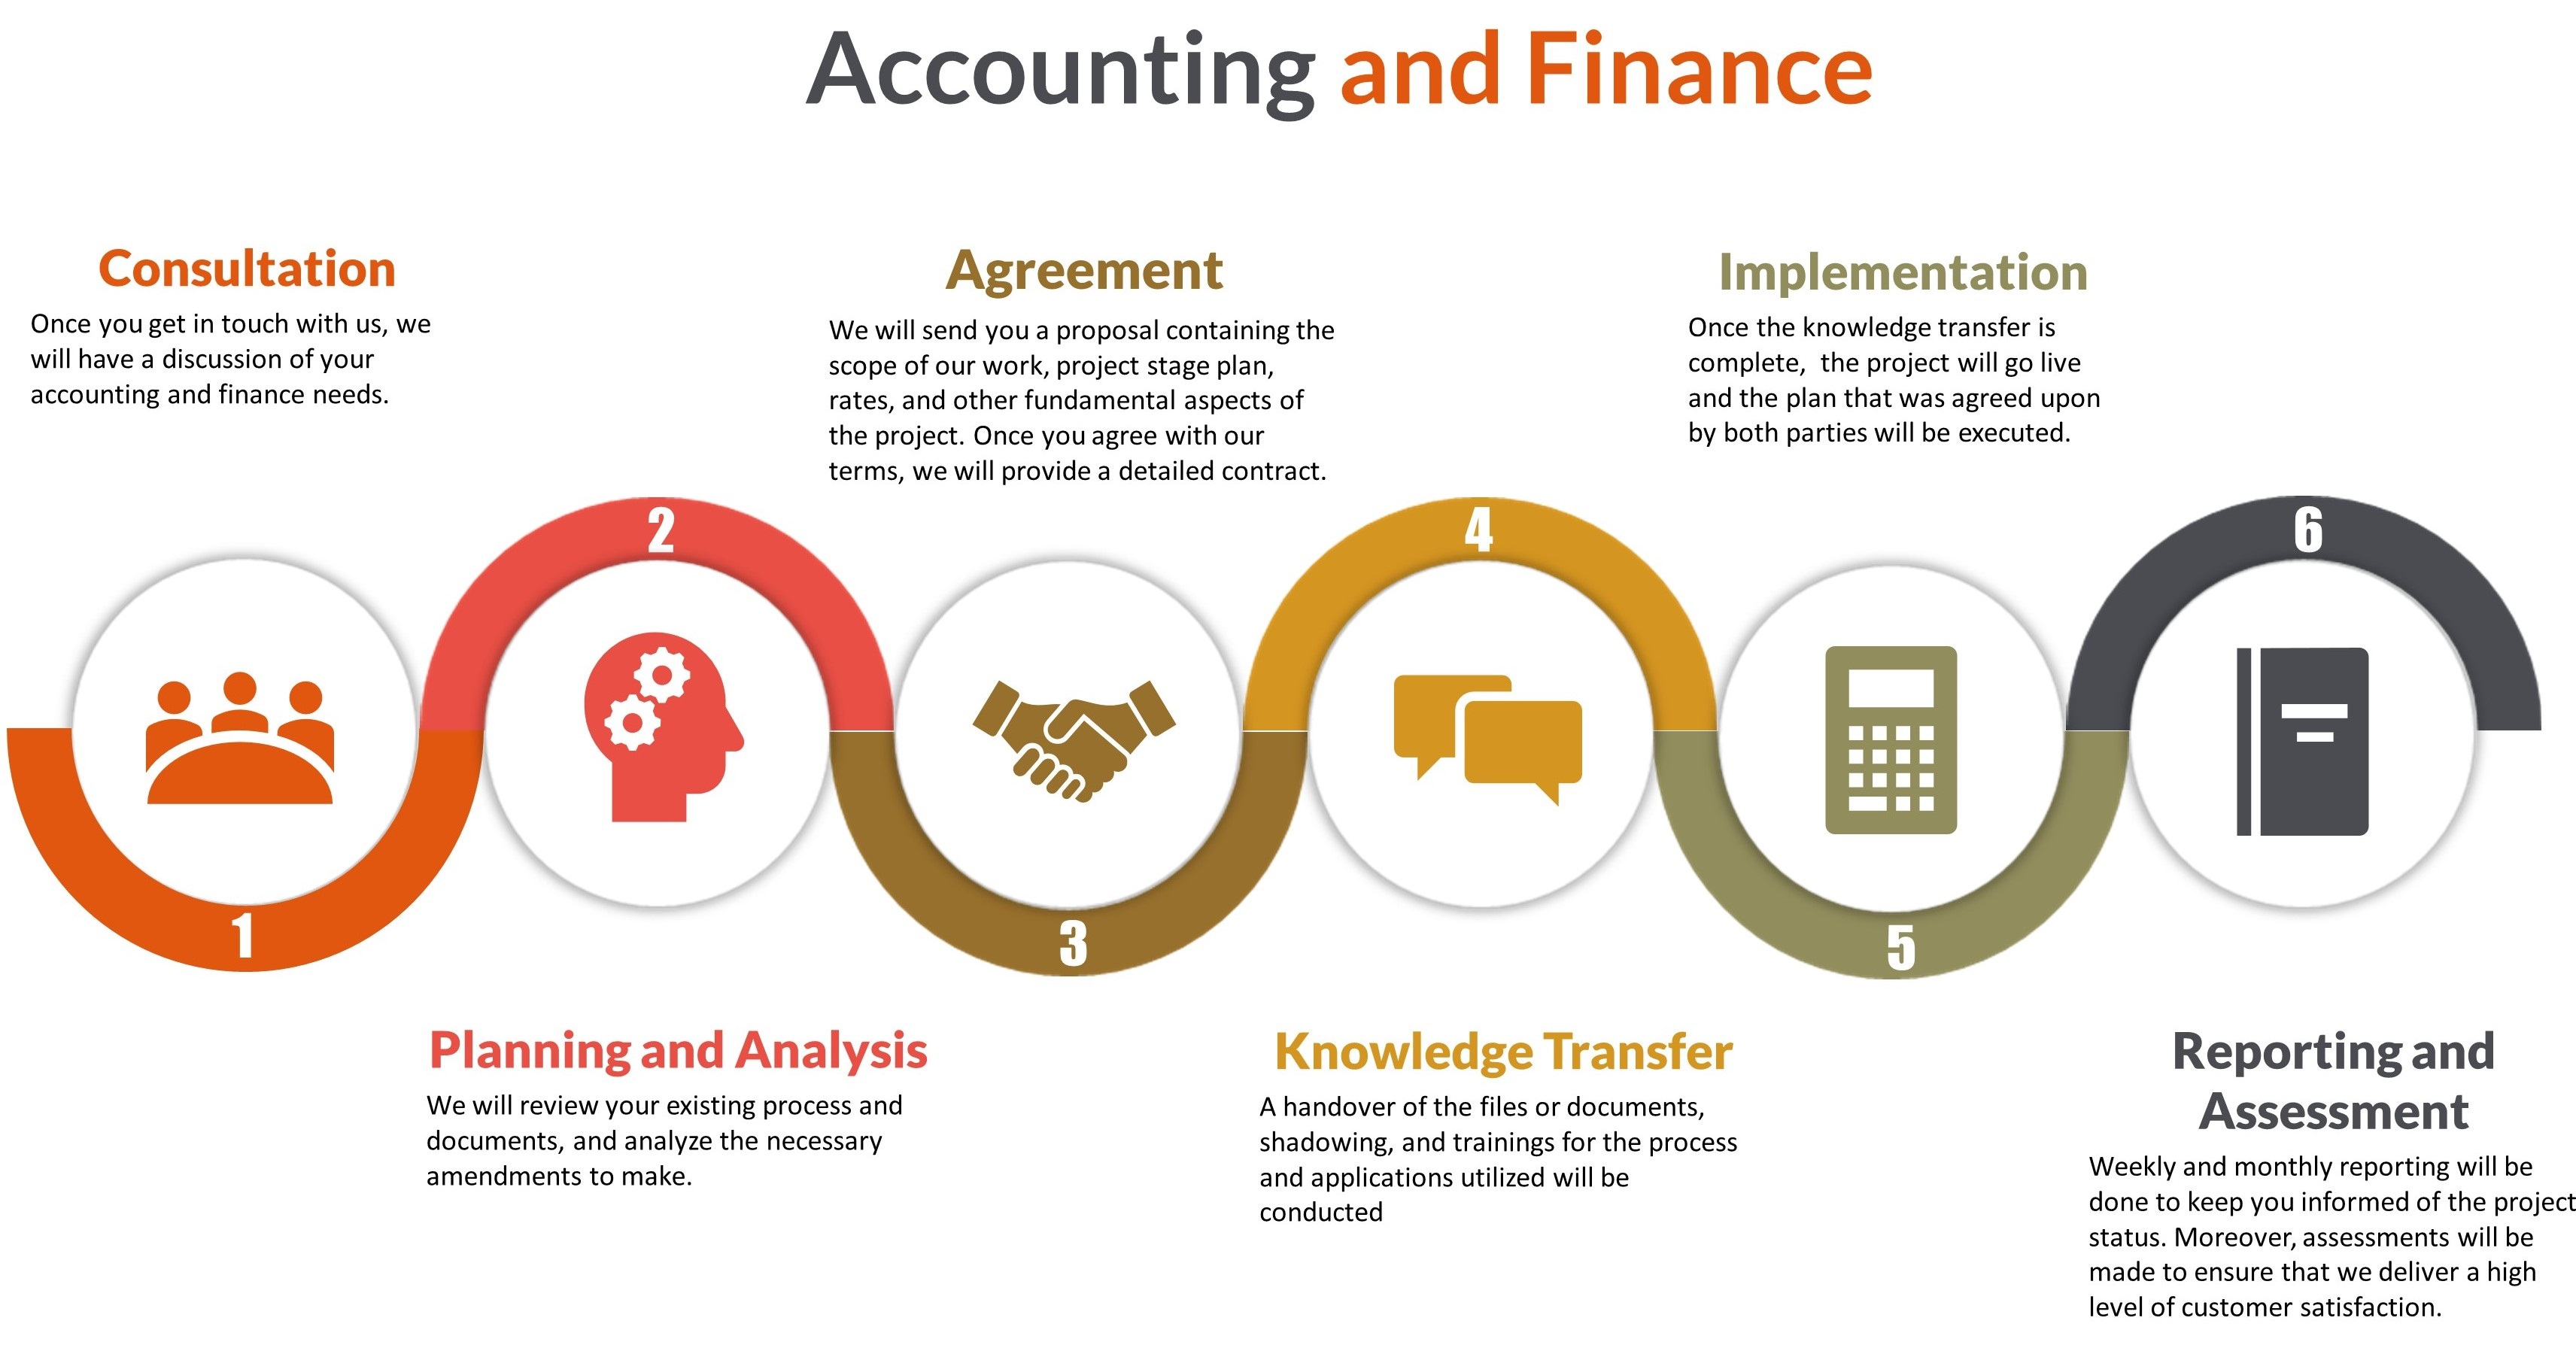 account and finance Robert half finance & accounting specializes in providing businesses with skilled finance and accounting professionals on a full-time basis.